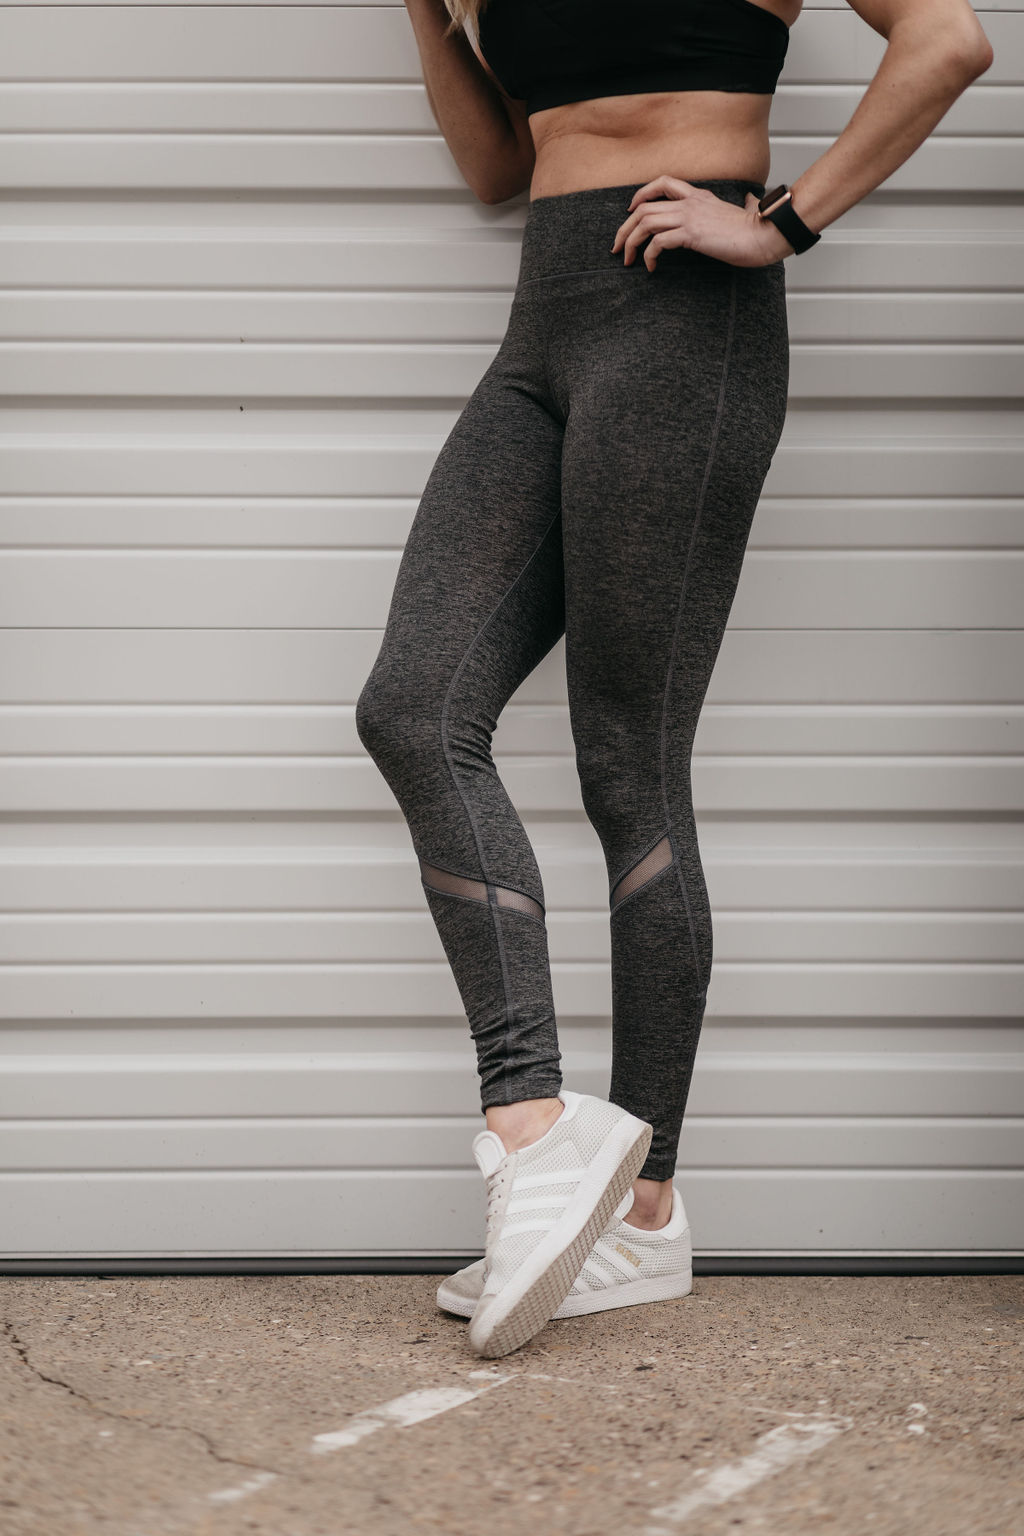 Brooke Burnett is featuring One Small Blonde Activewear Collection